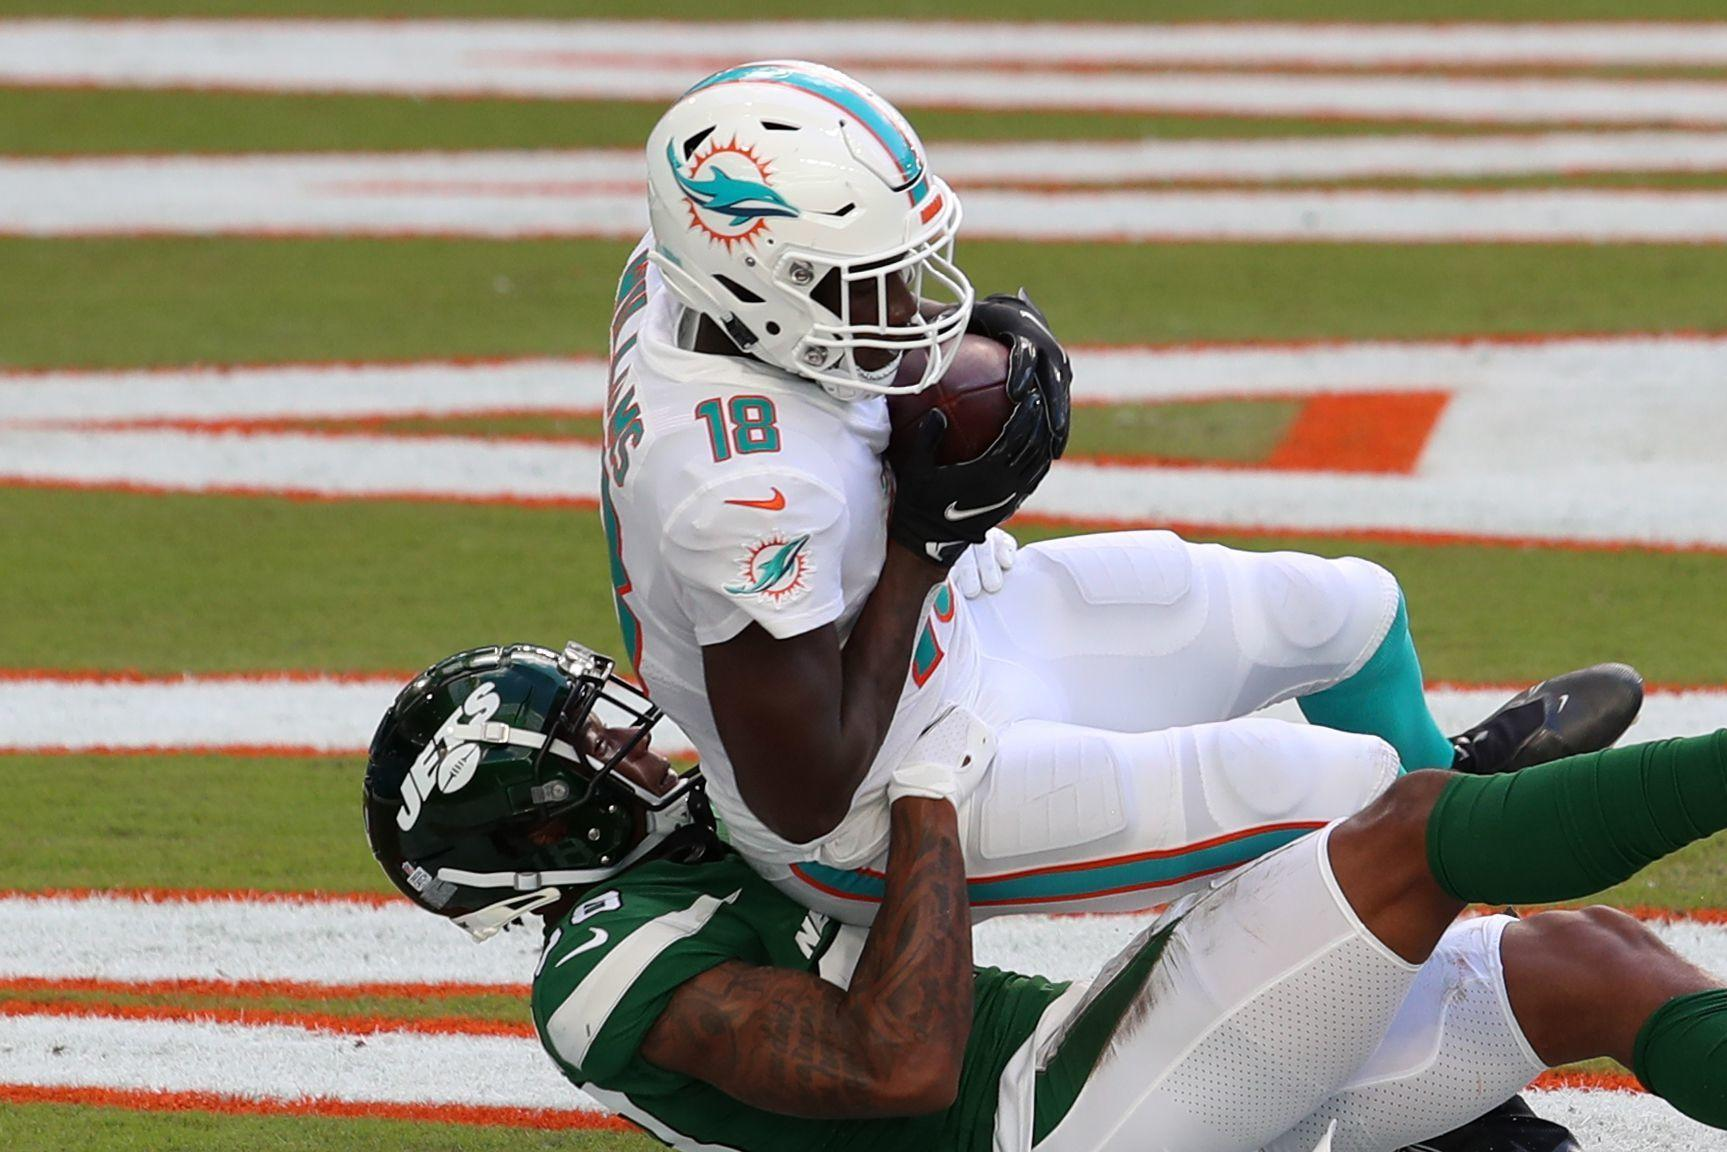 Hyde10: Tua plays, defense dominates — 10 thoughts on Dolphins' win over Jets